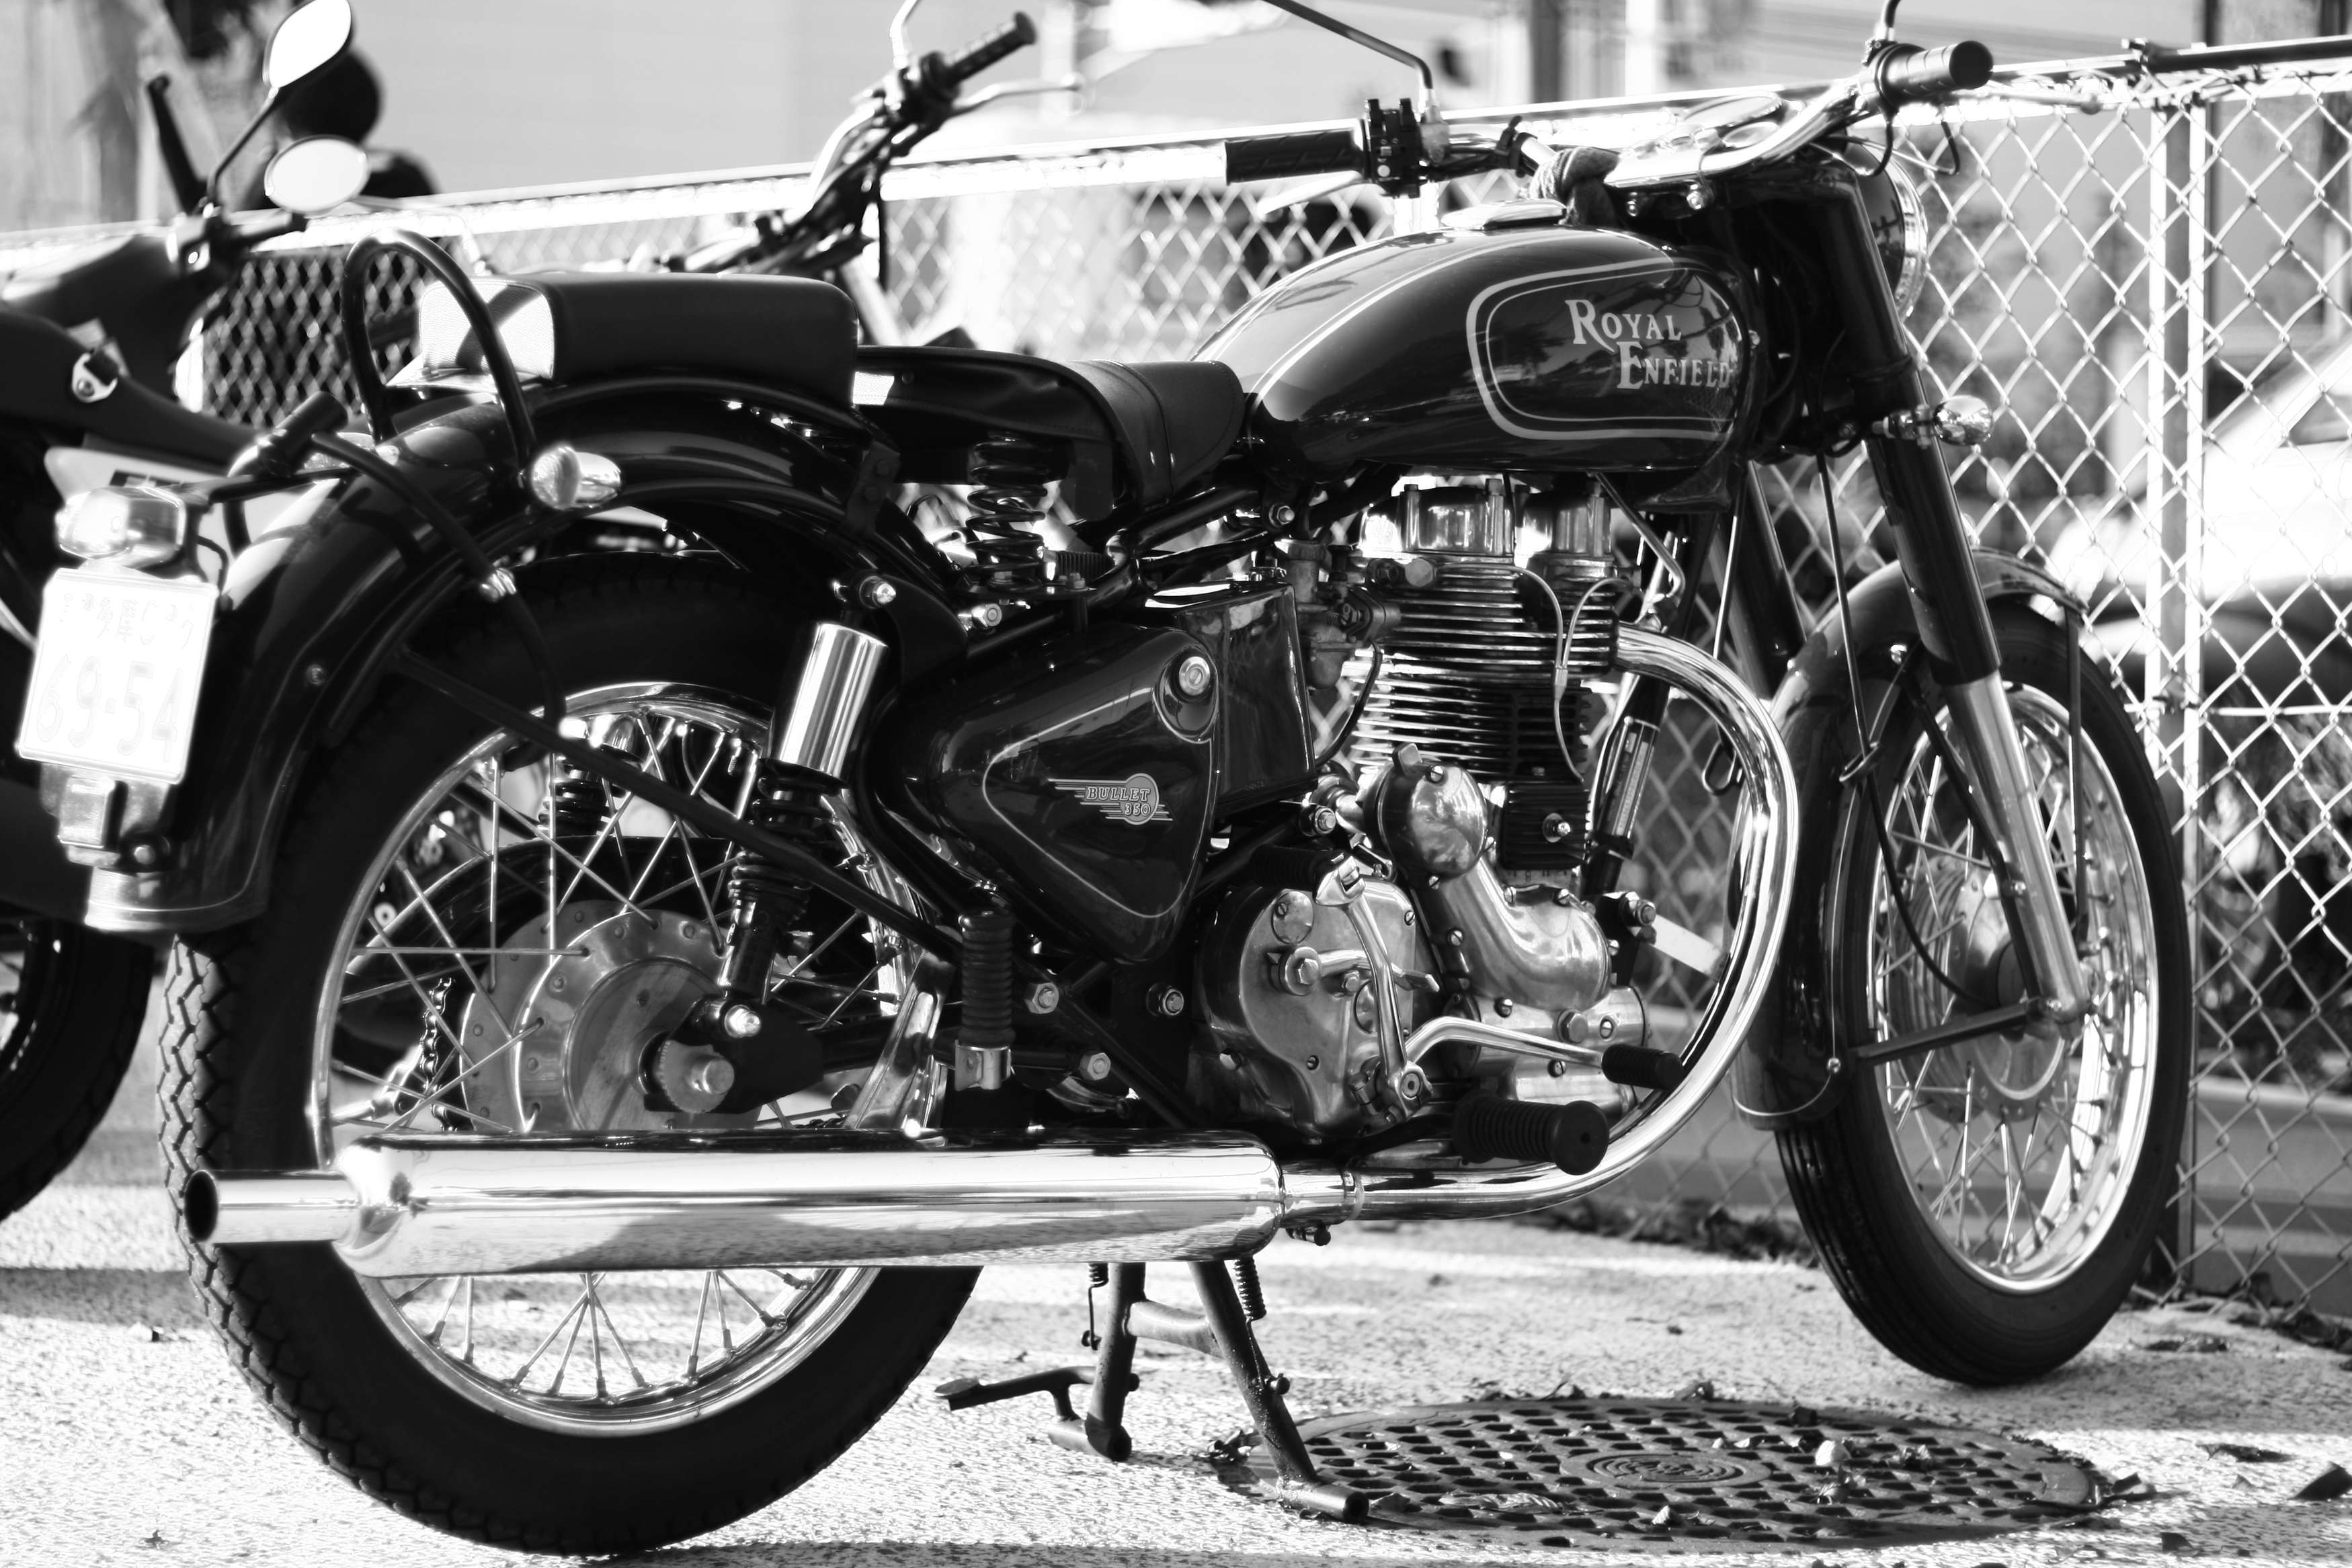 Royal Enfield Bullet 350 #9641084